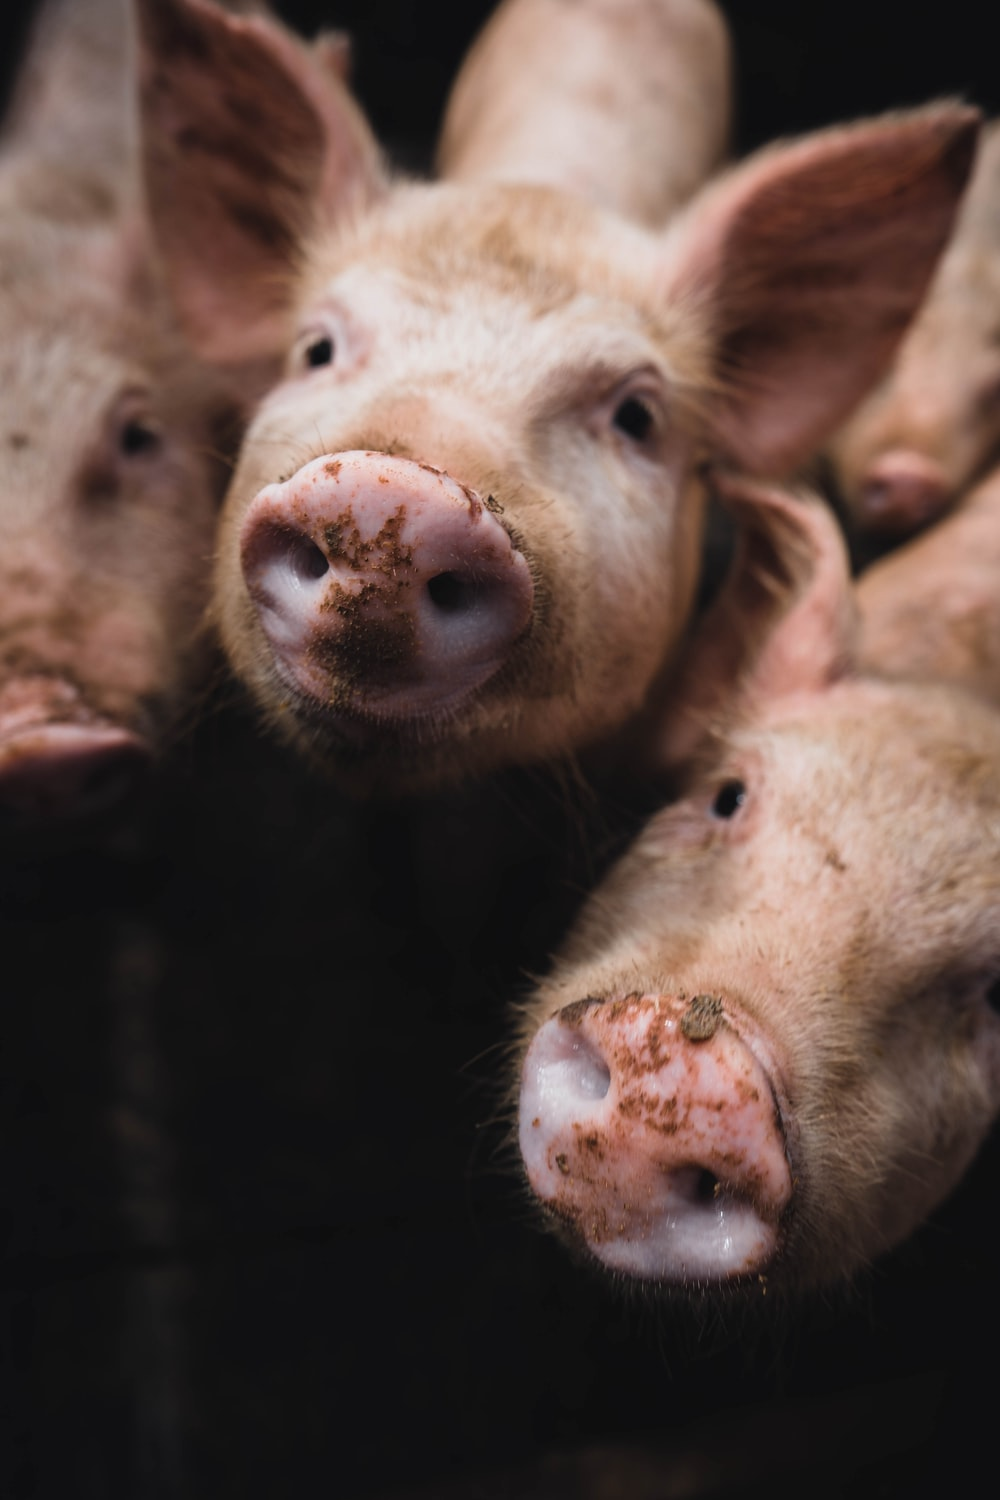 pink pigs in close up photography